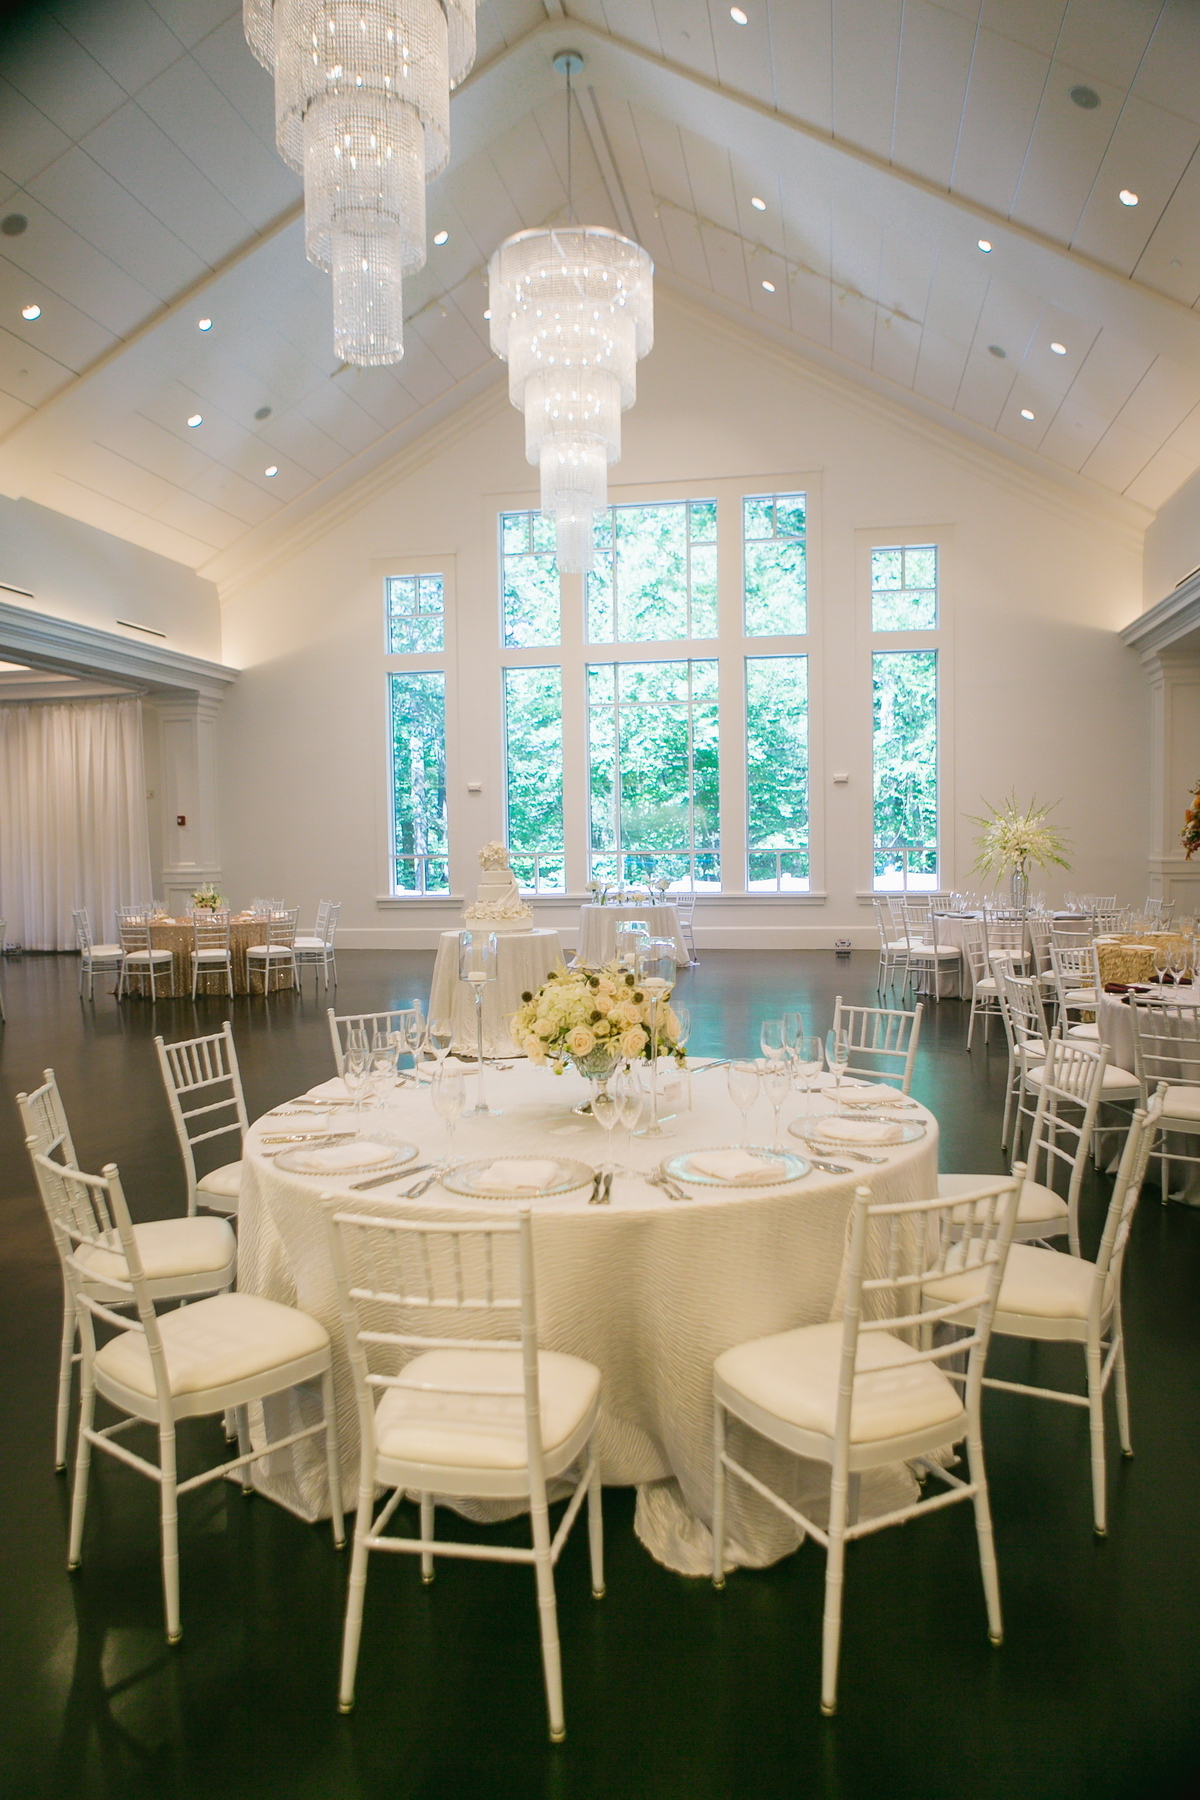 lakeview pavilion reopens as a wedding venue